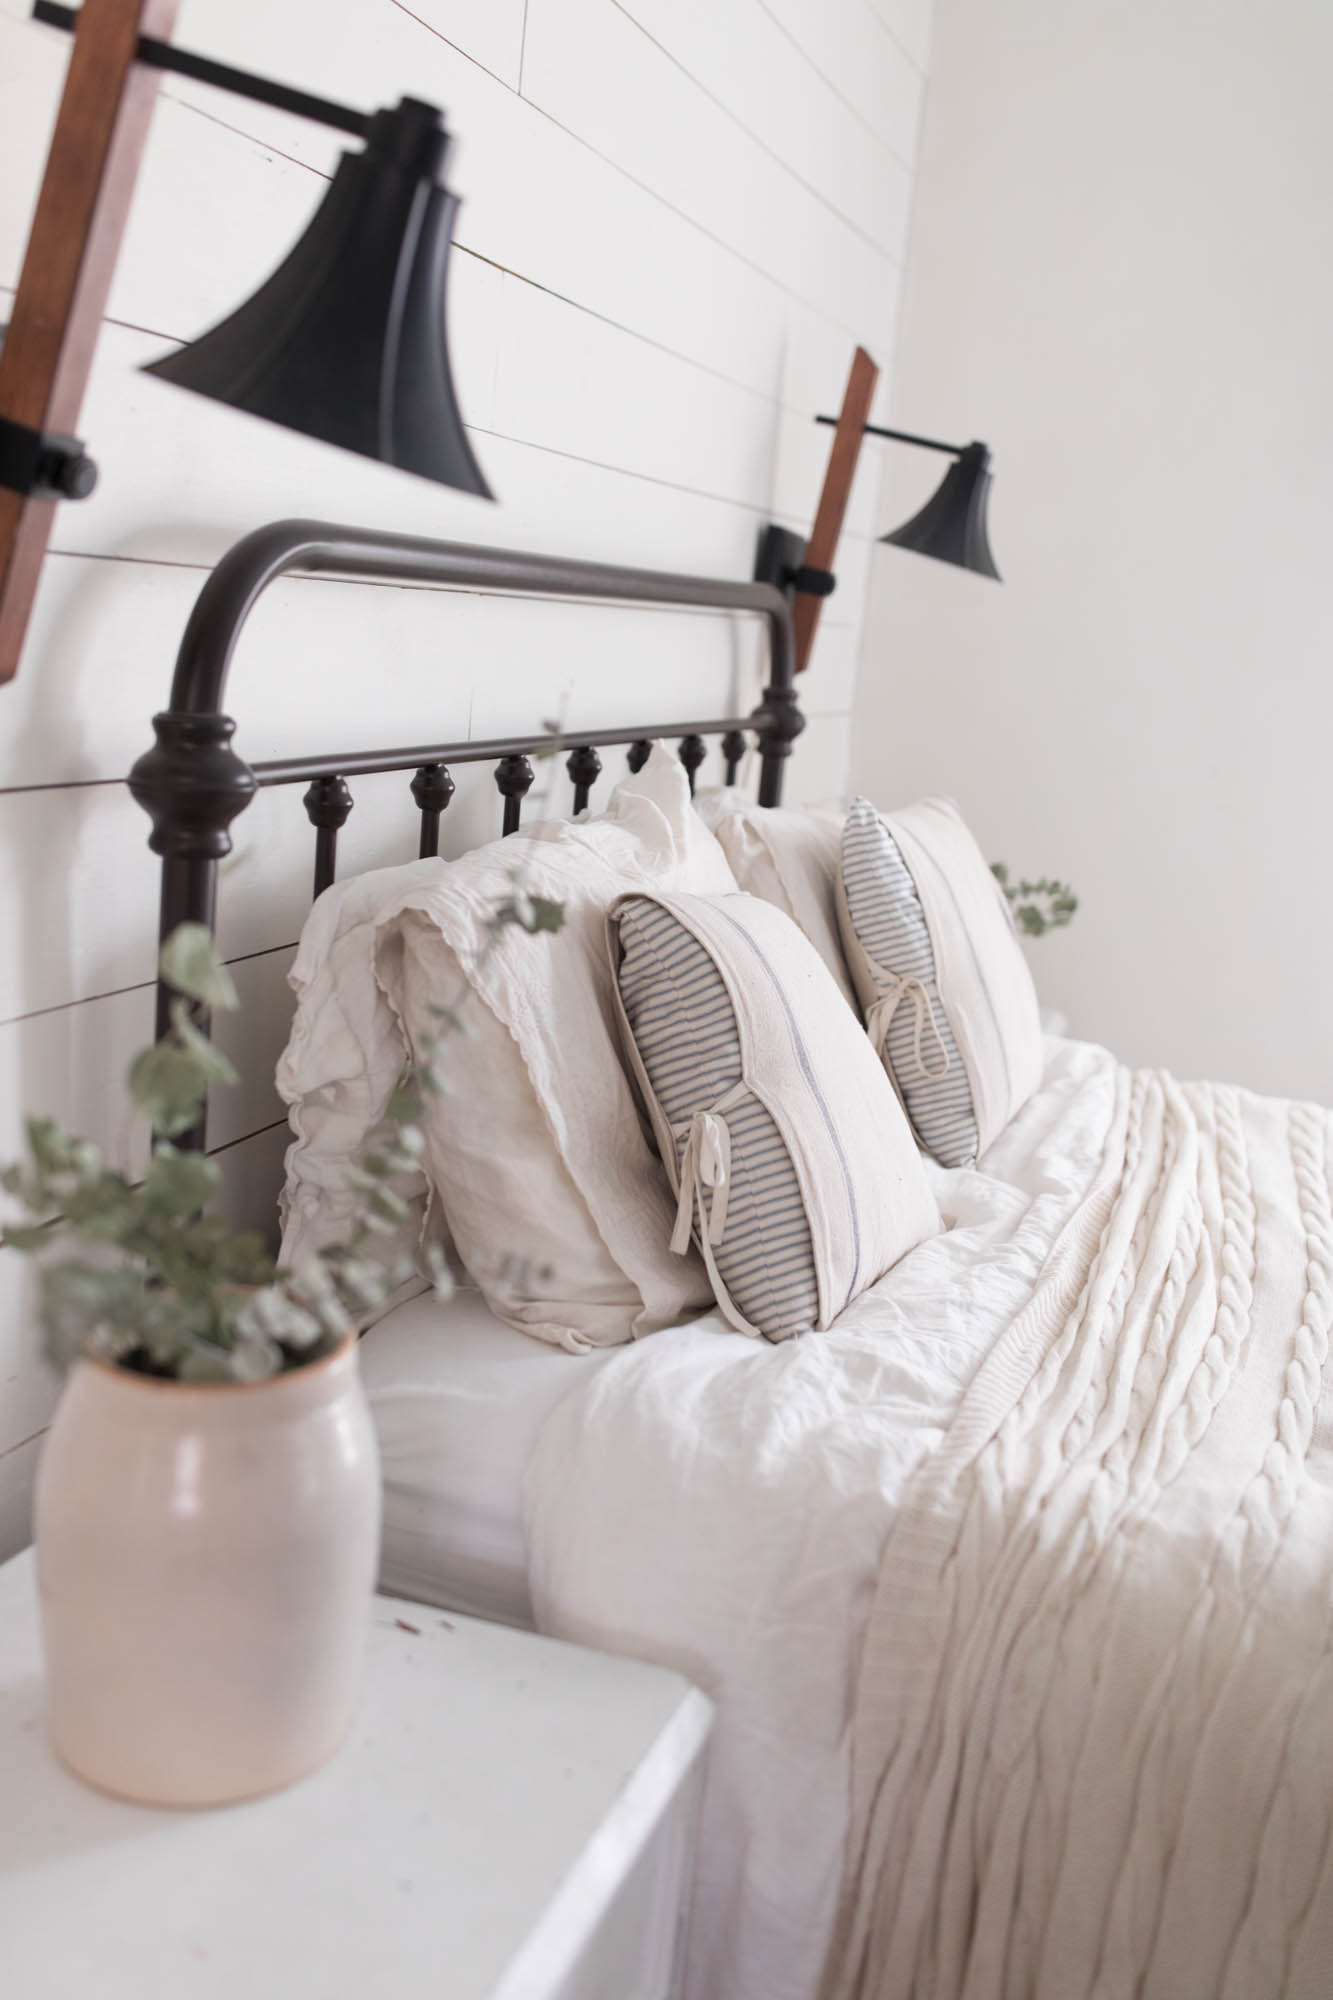 Farmhouse Master Bedroom Inspiration Ticking Stripe Pillows